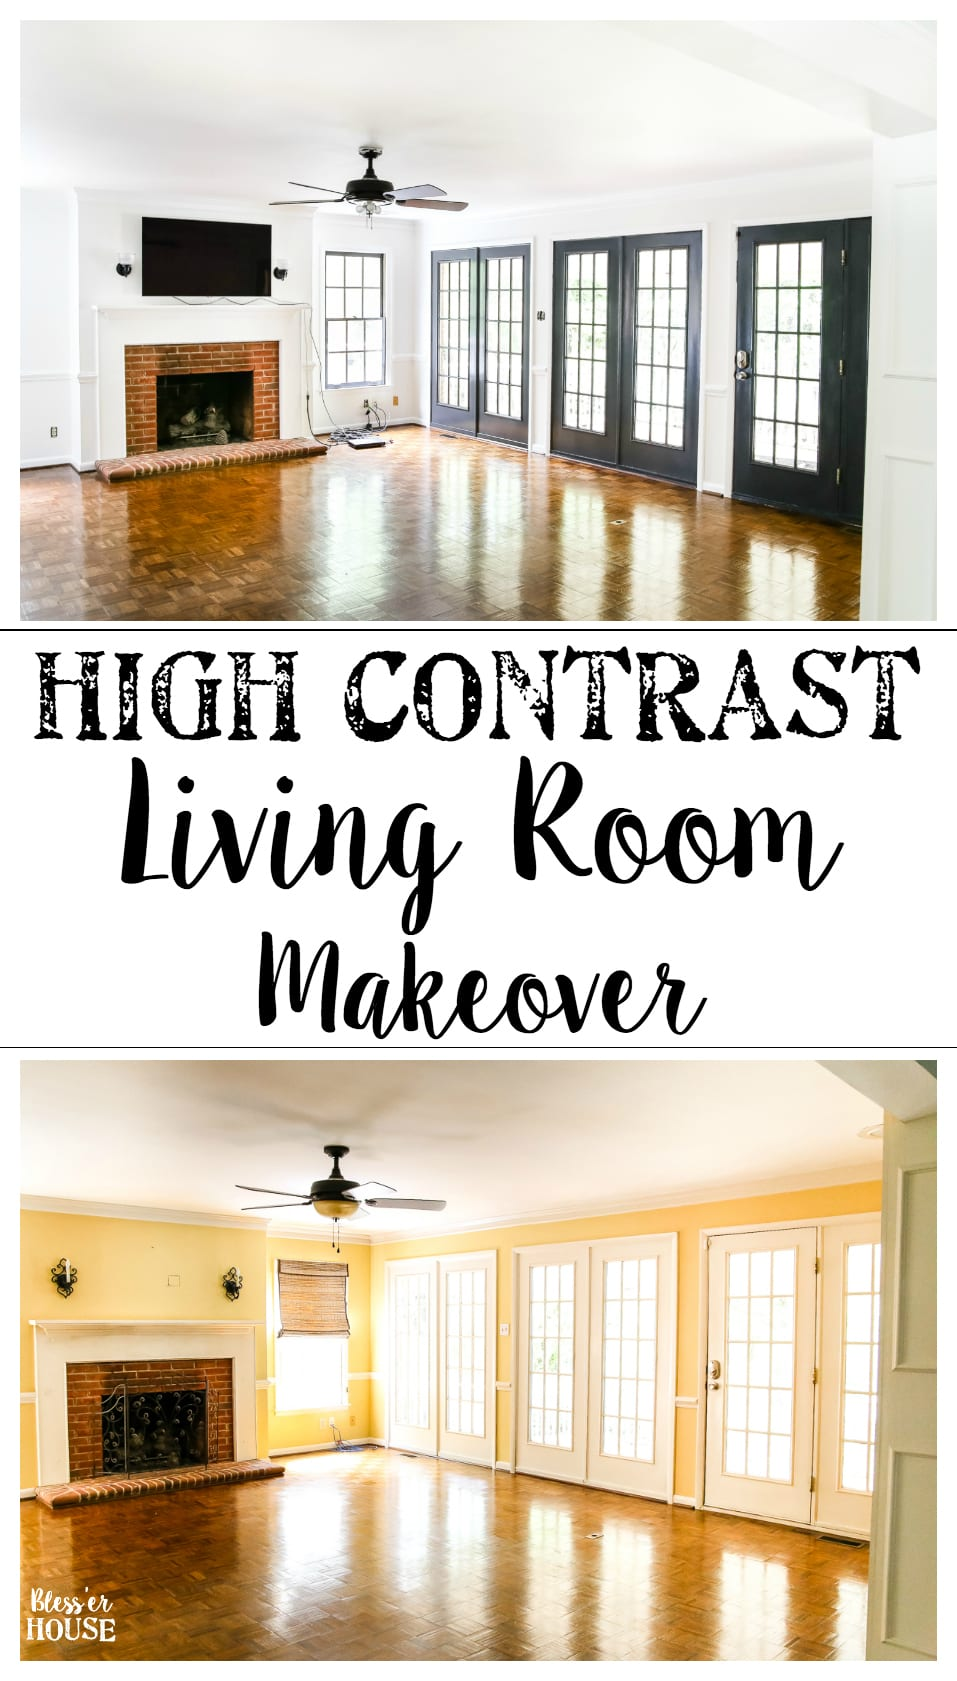 Living Room Makeover - High Contrast Paint | blesserhouse.com - A beige, dated living room gets a classic and chic high contrast makeover using just Benjamin Moore paint for a simple, inexpensive way to create drama.